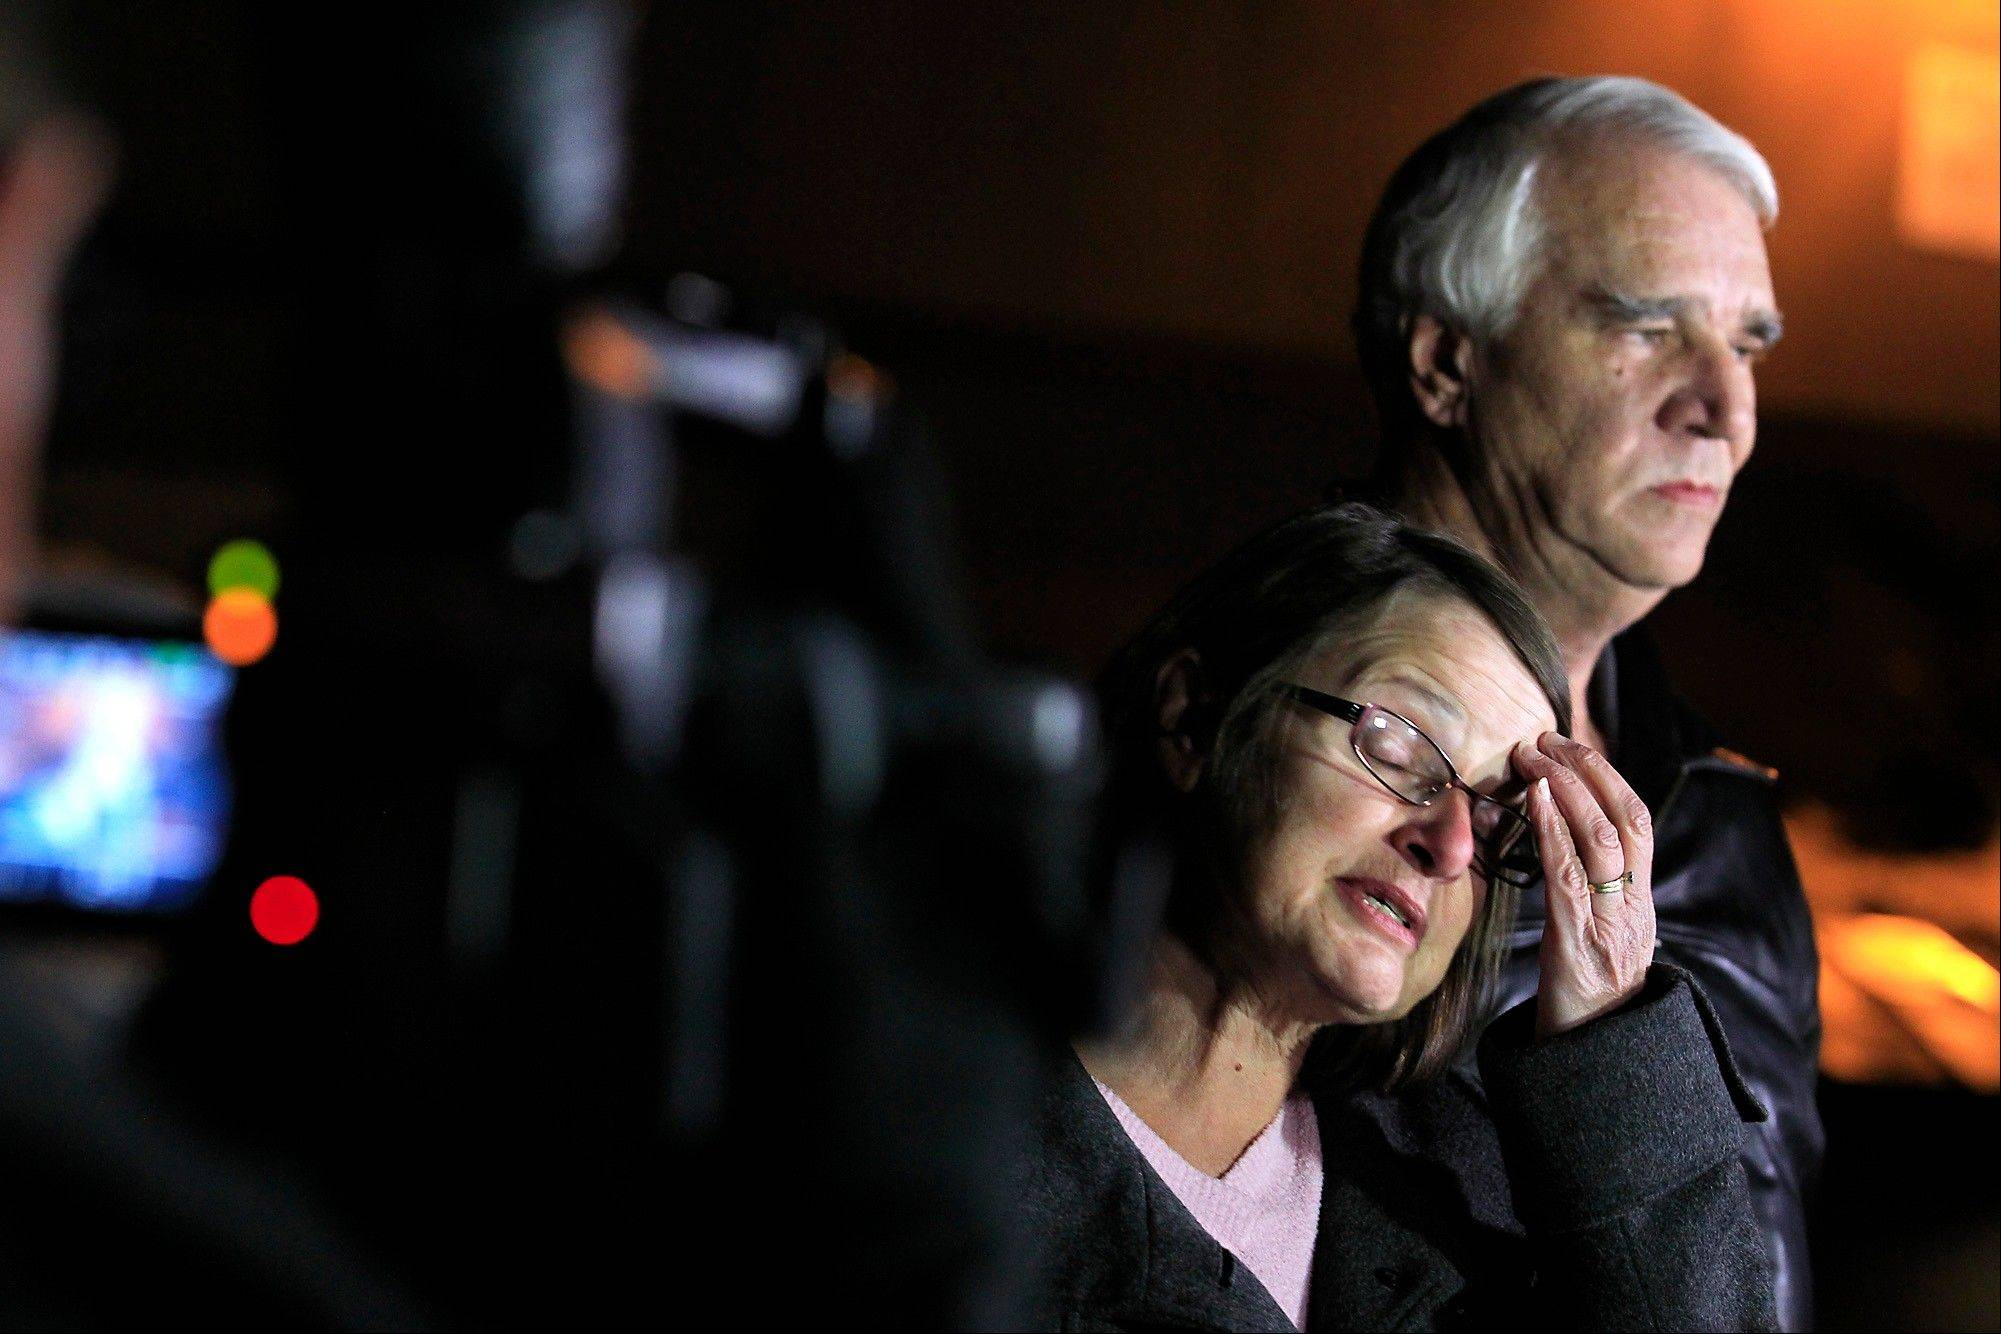 Jim Reynolds, 66, right, and wife, Karen Reynolds 57, were held captive by fugitive Christopher Dorner inside a condo at Mountain Vista Resort. The couple said Dorner bound them, put pillow cases over their heads and fled in their purple Nissan. When he did, Karen Reynolds managed to get to her cellphone and call 911.